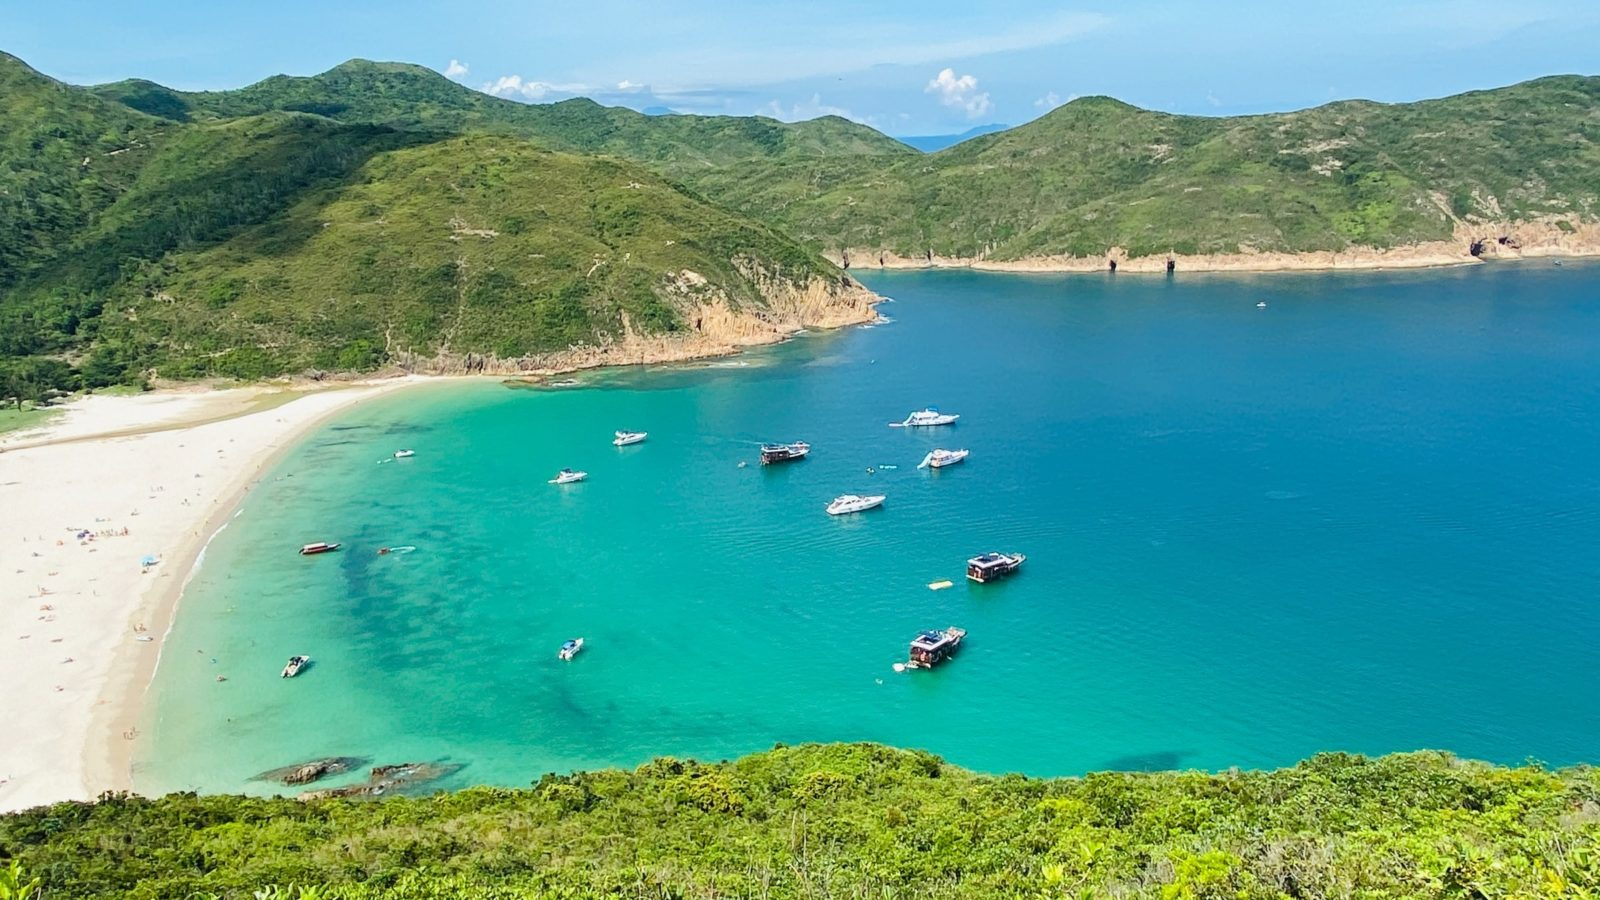 5 ways to satisfy your wanderlust without leaving Hong Kong